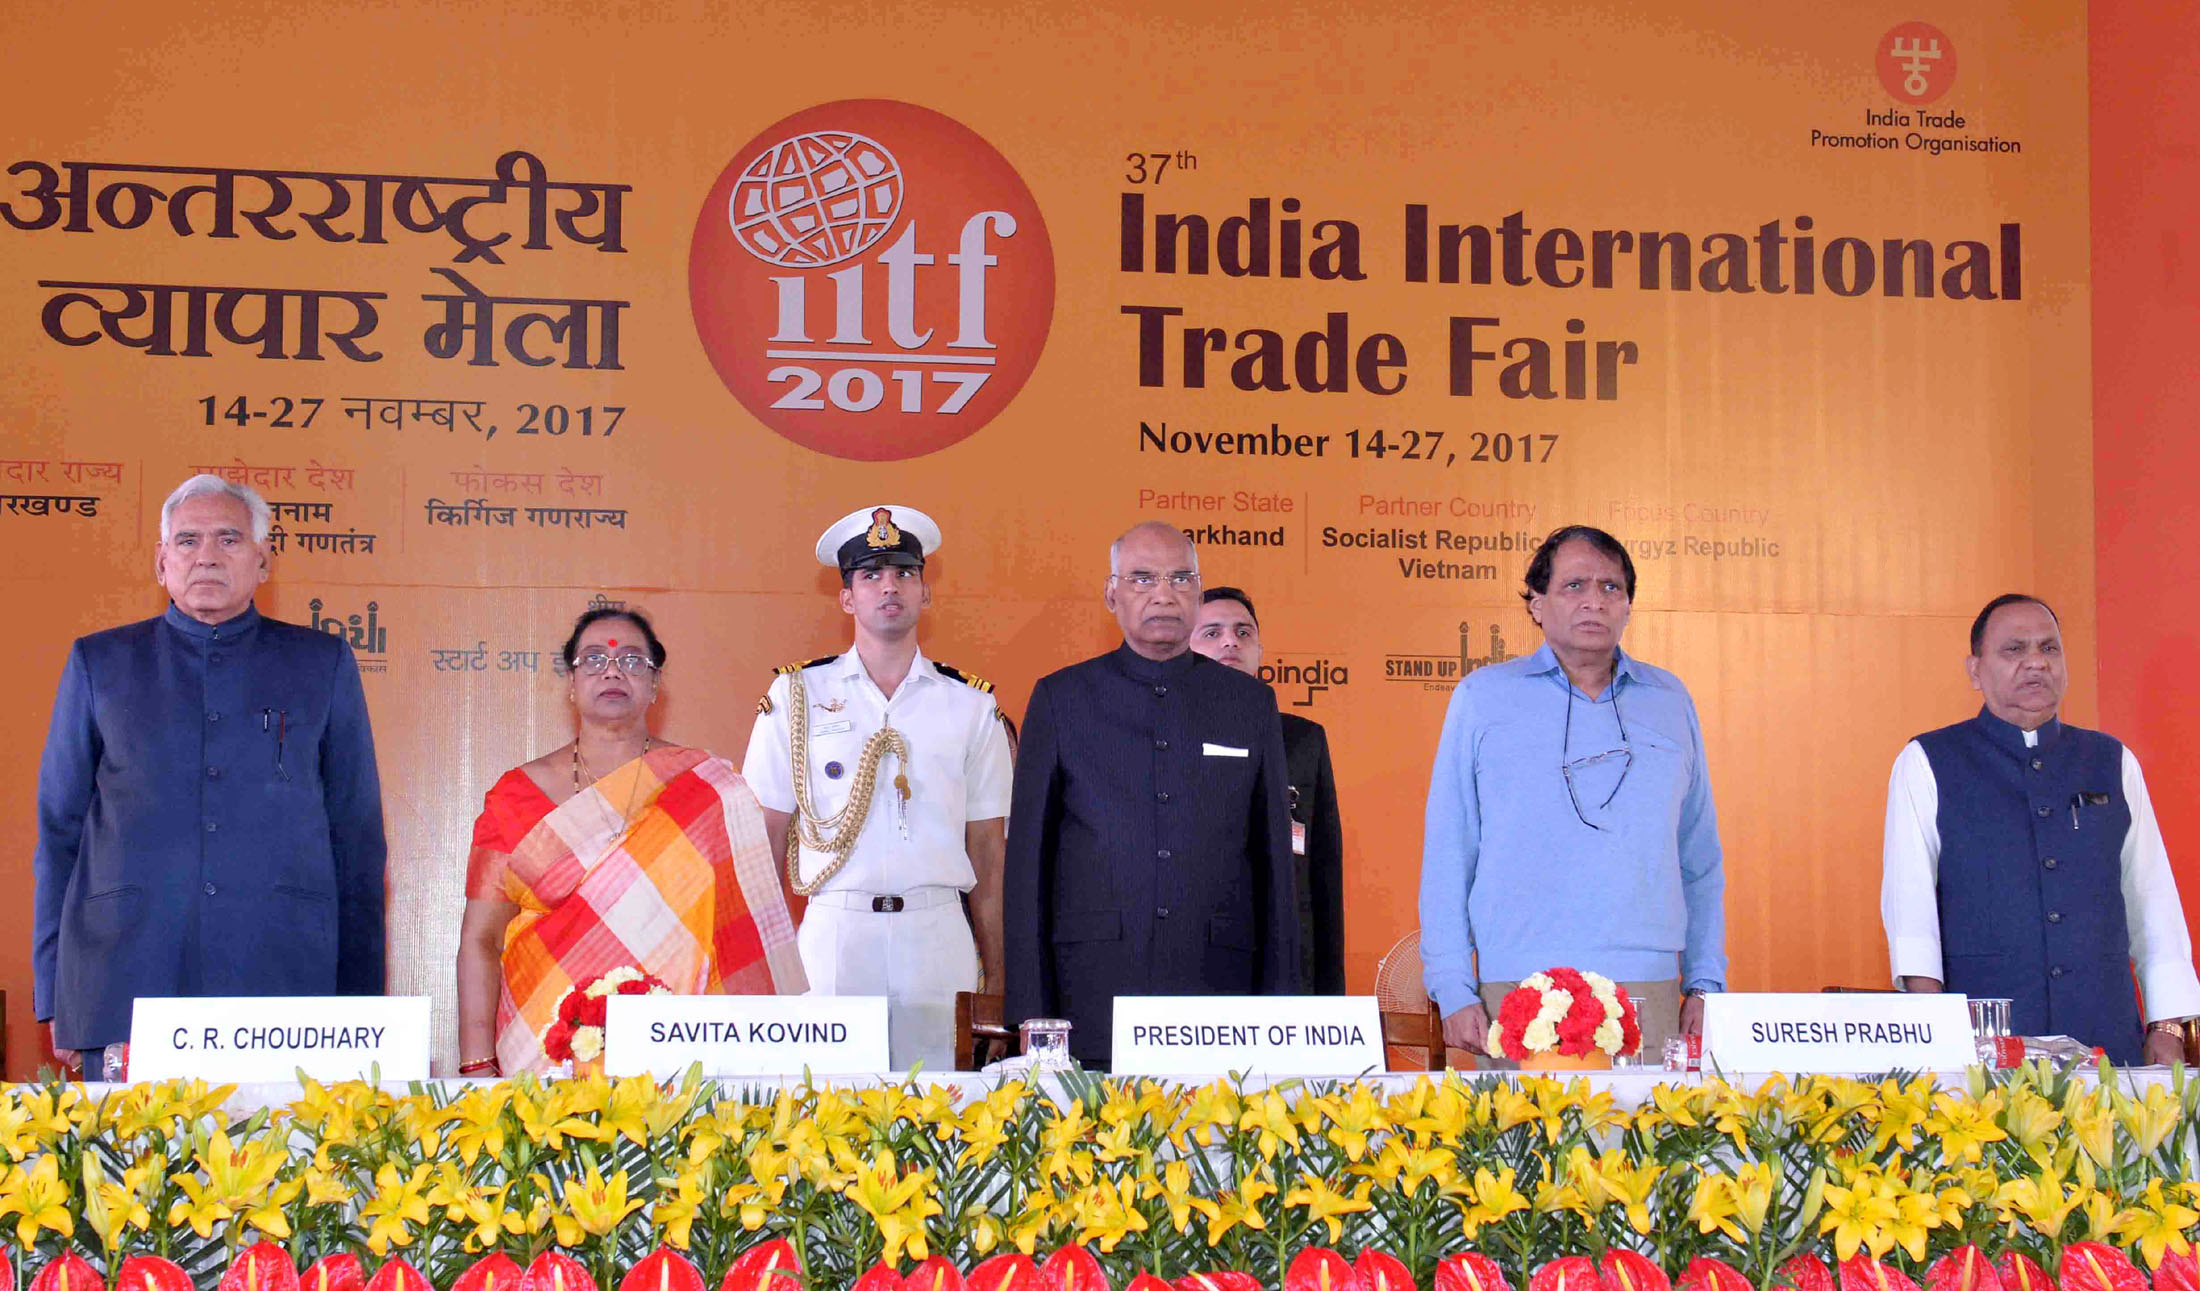 File:The President, Shri Ram Nath Kovind at the inauguration of the